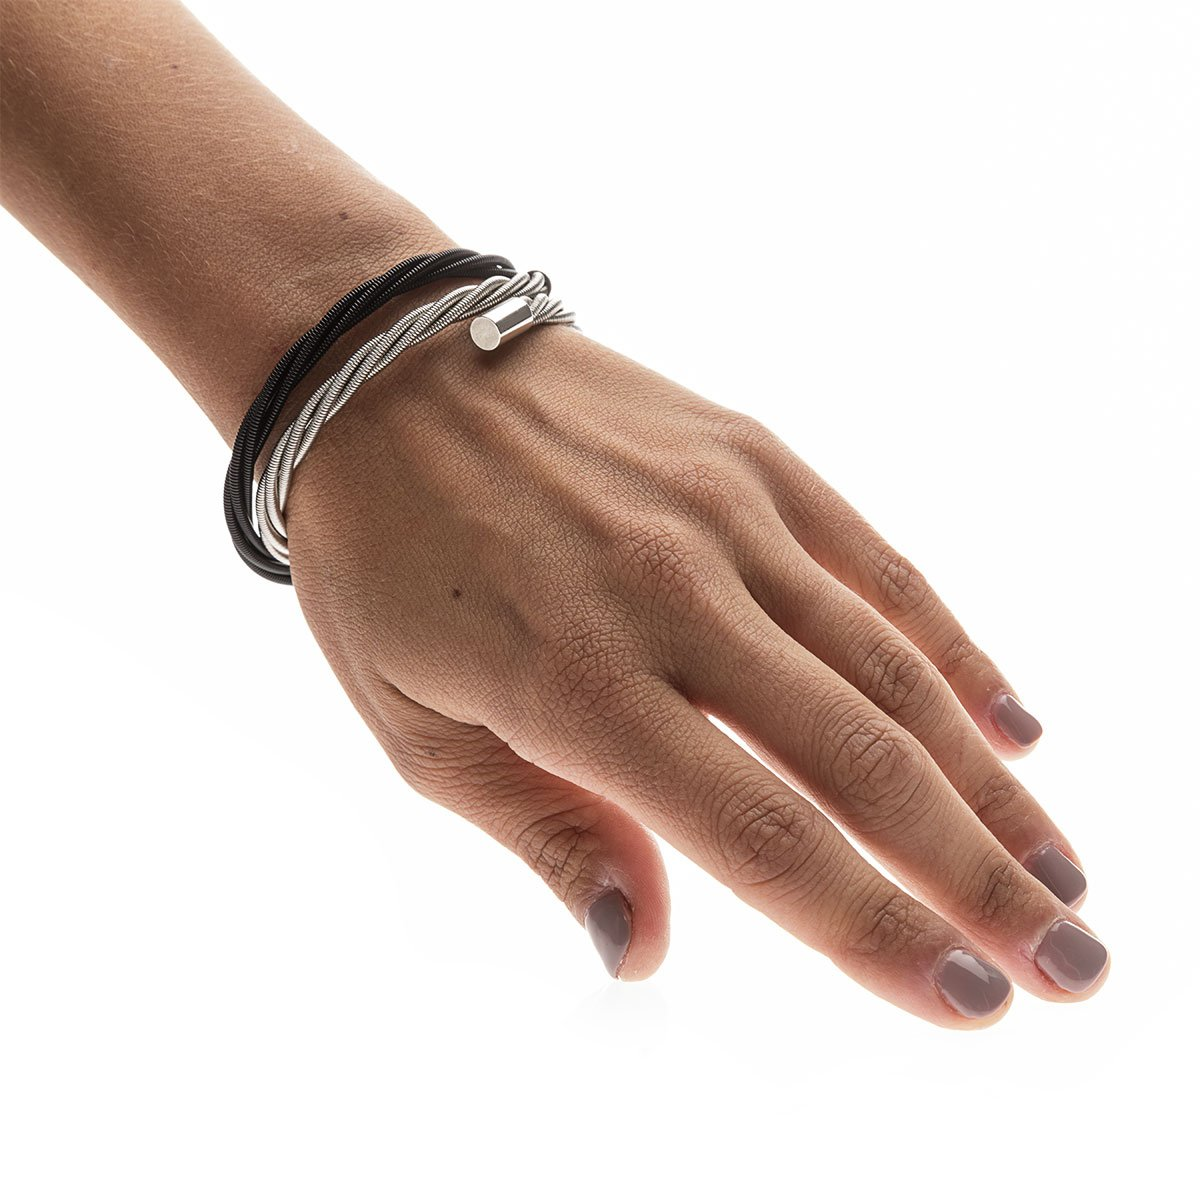 Bass String Bracelet - Duo by Wear Your Music